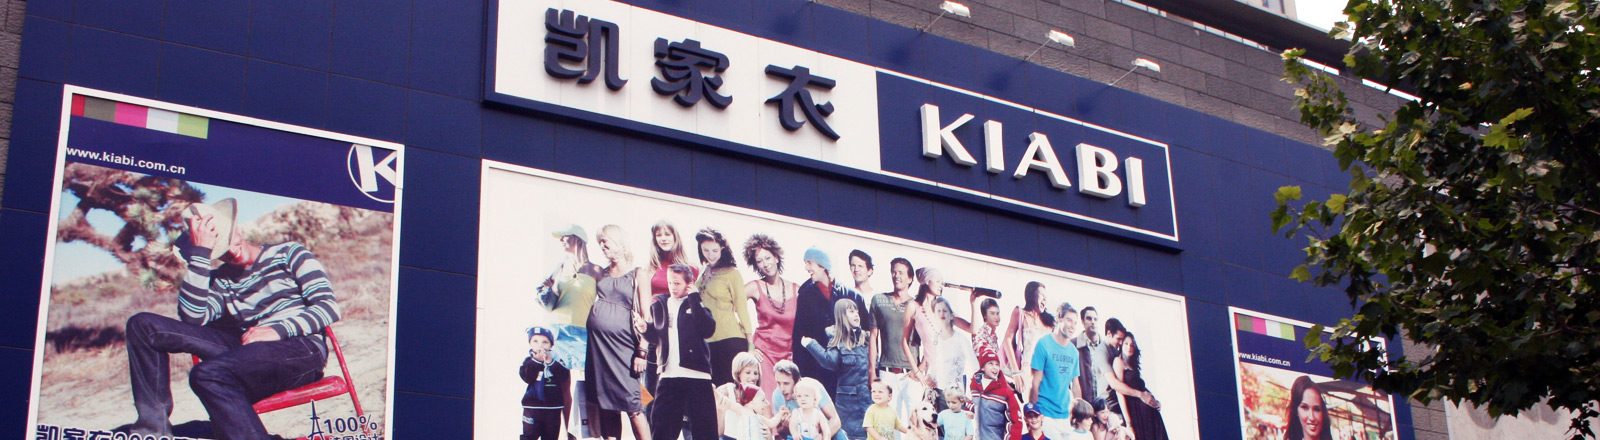 Kiabi China - store